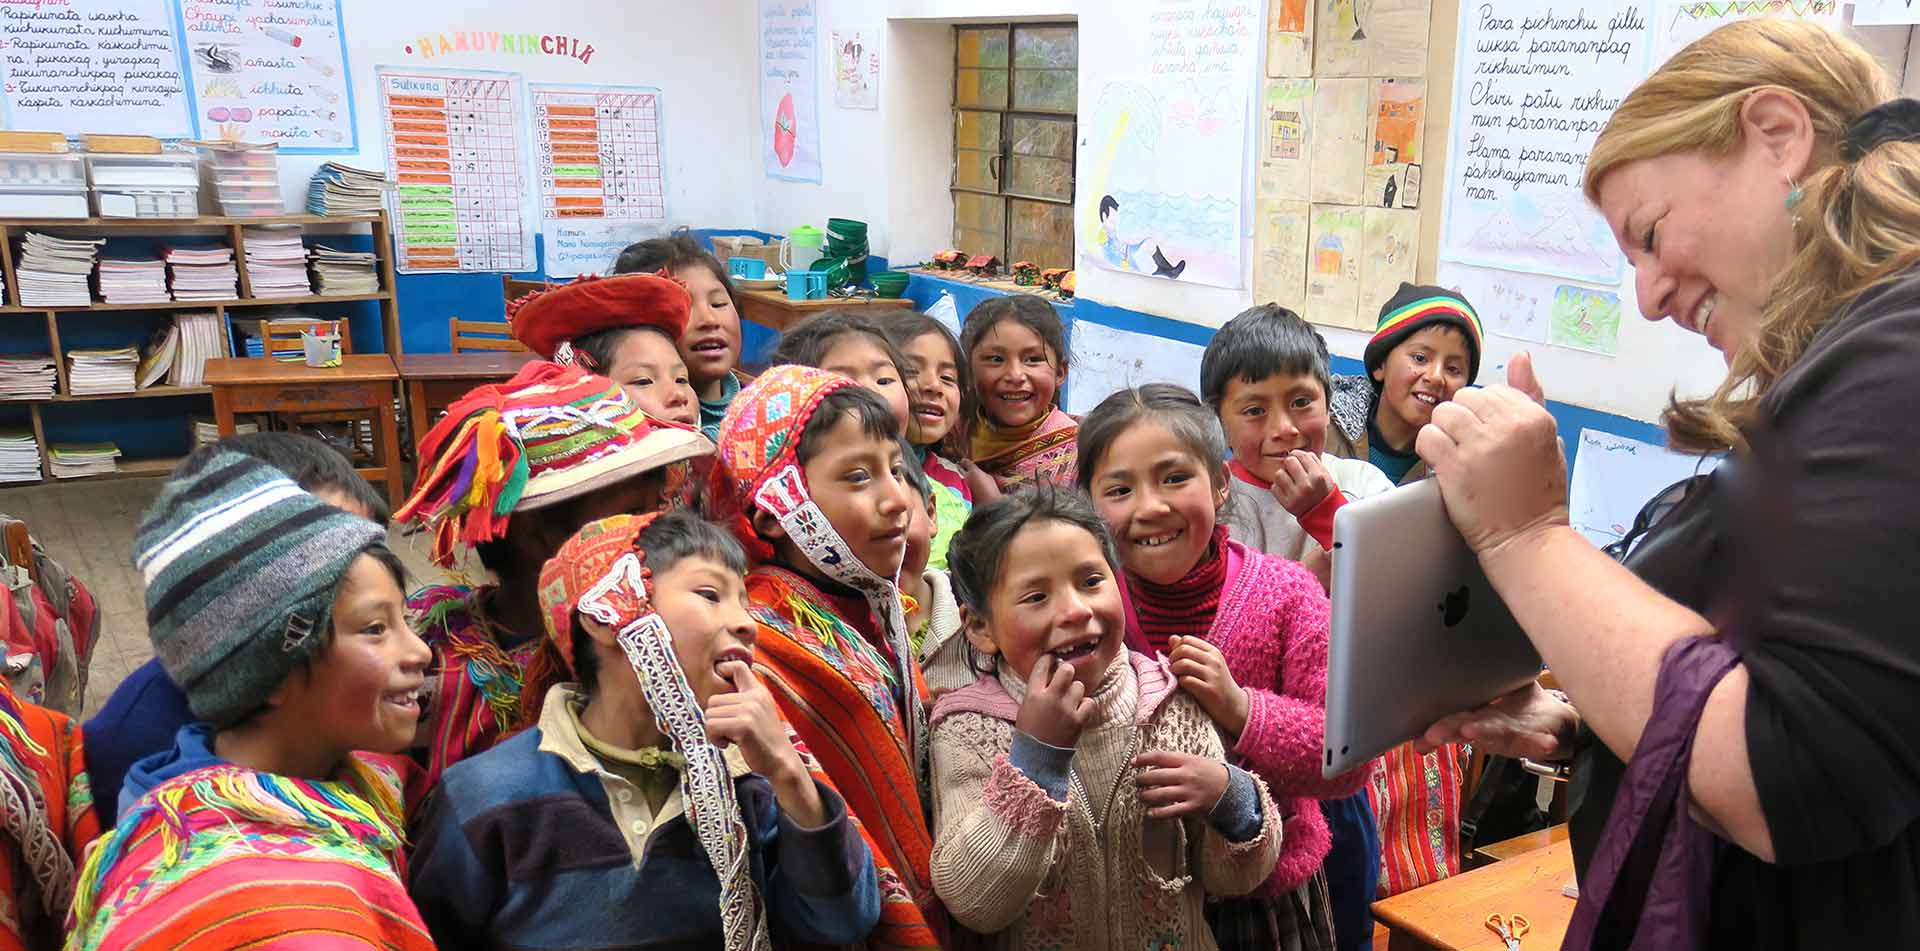 South America Peru Quechua schoolchildren in traditional bright attire smiling looking at iPad - luxury vacation destinations